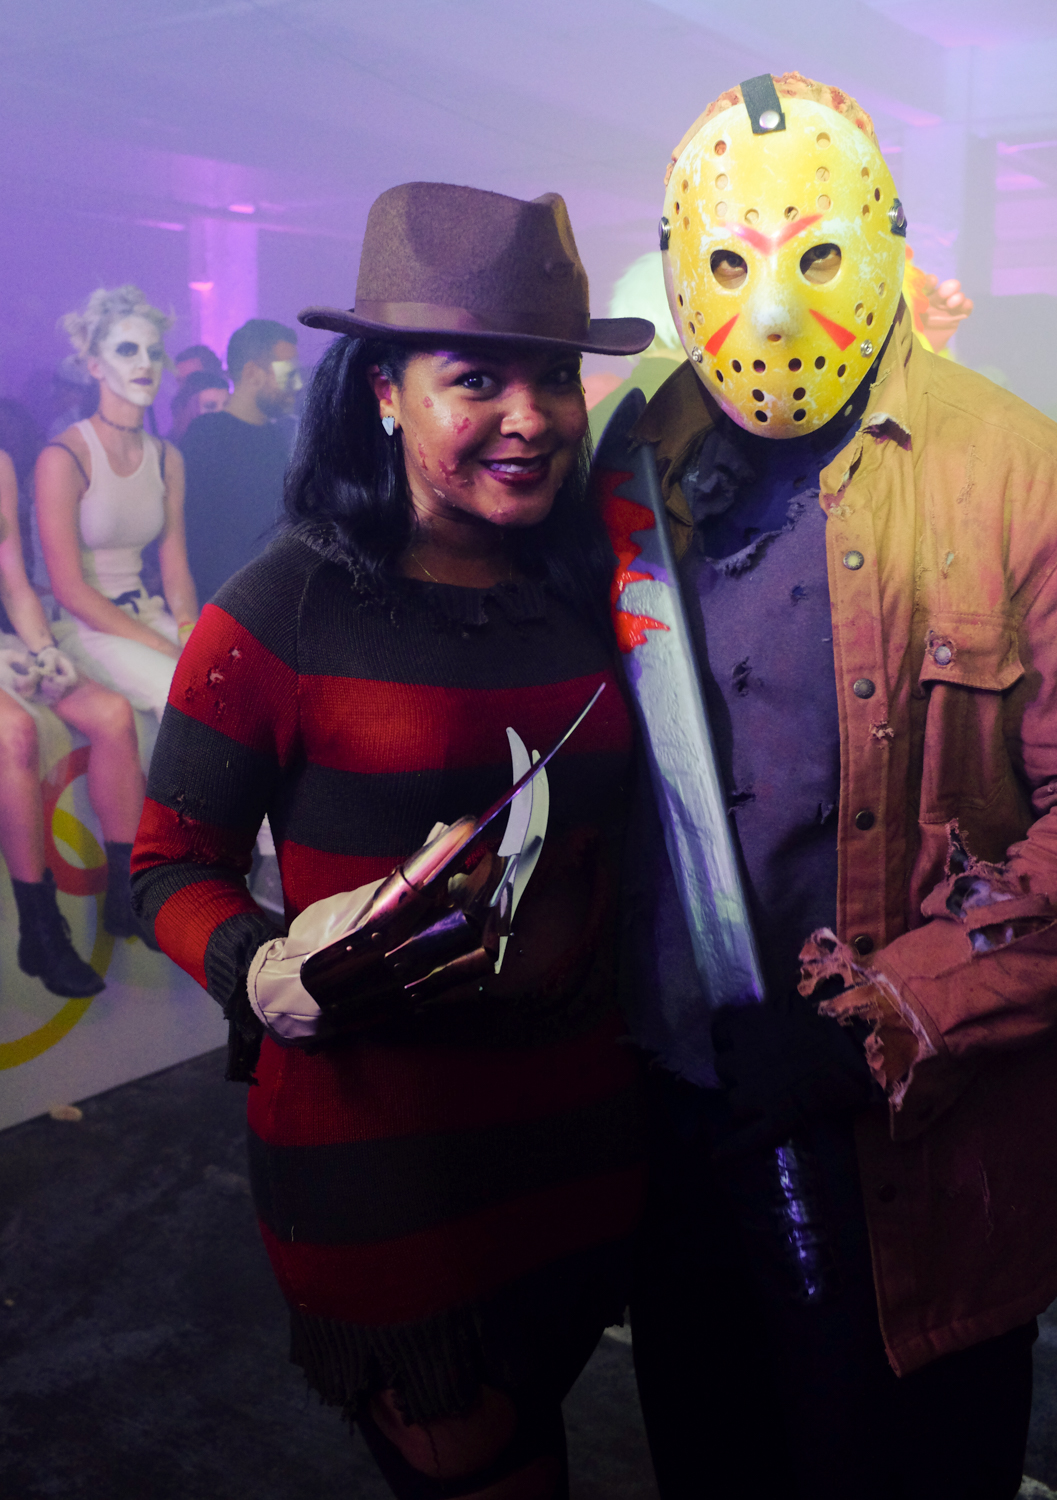 Freddy Krueger and Jason / Image: Melissa Doss Sliney